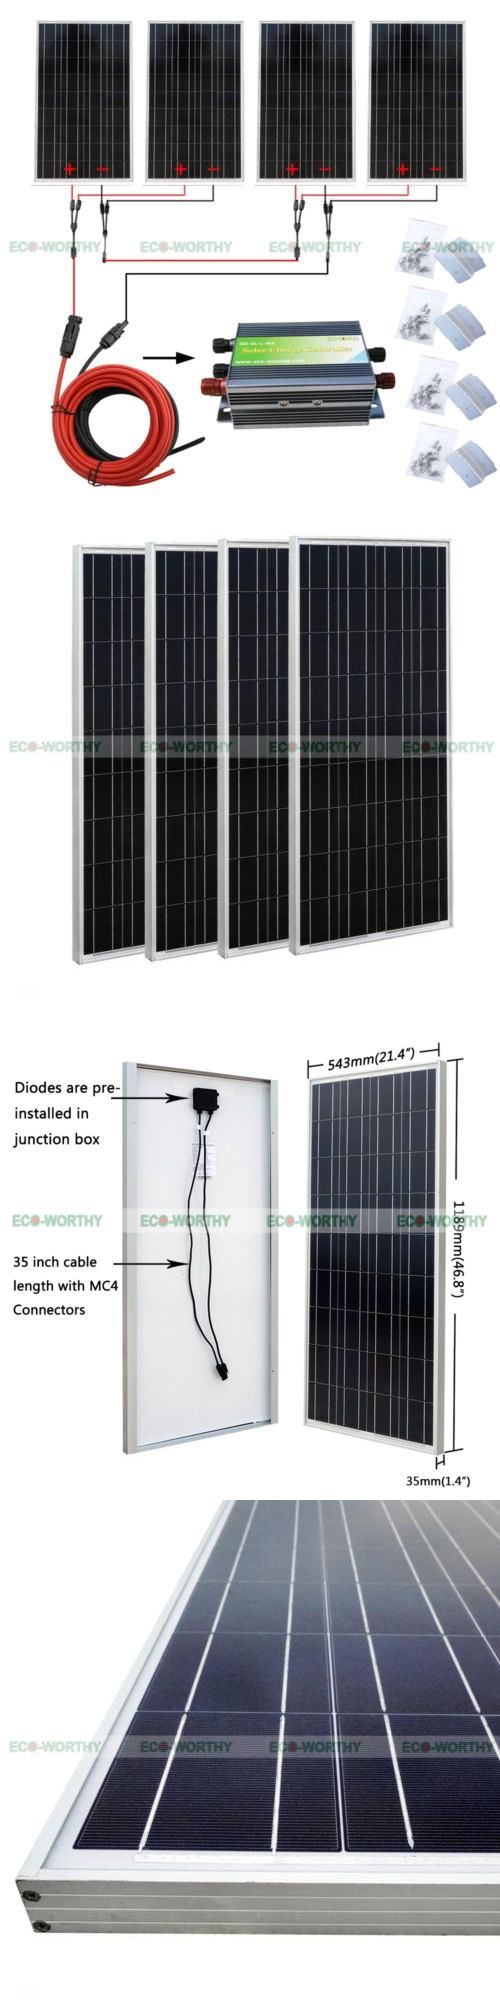 Solar Panels 41981: 400W Off Grid Solar Panel Kit:4*100W Solar Panel For Home Rv 24V Power System -> BUY IT NOW ONLY: $550.15 on eBay!